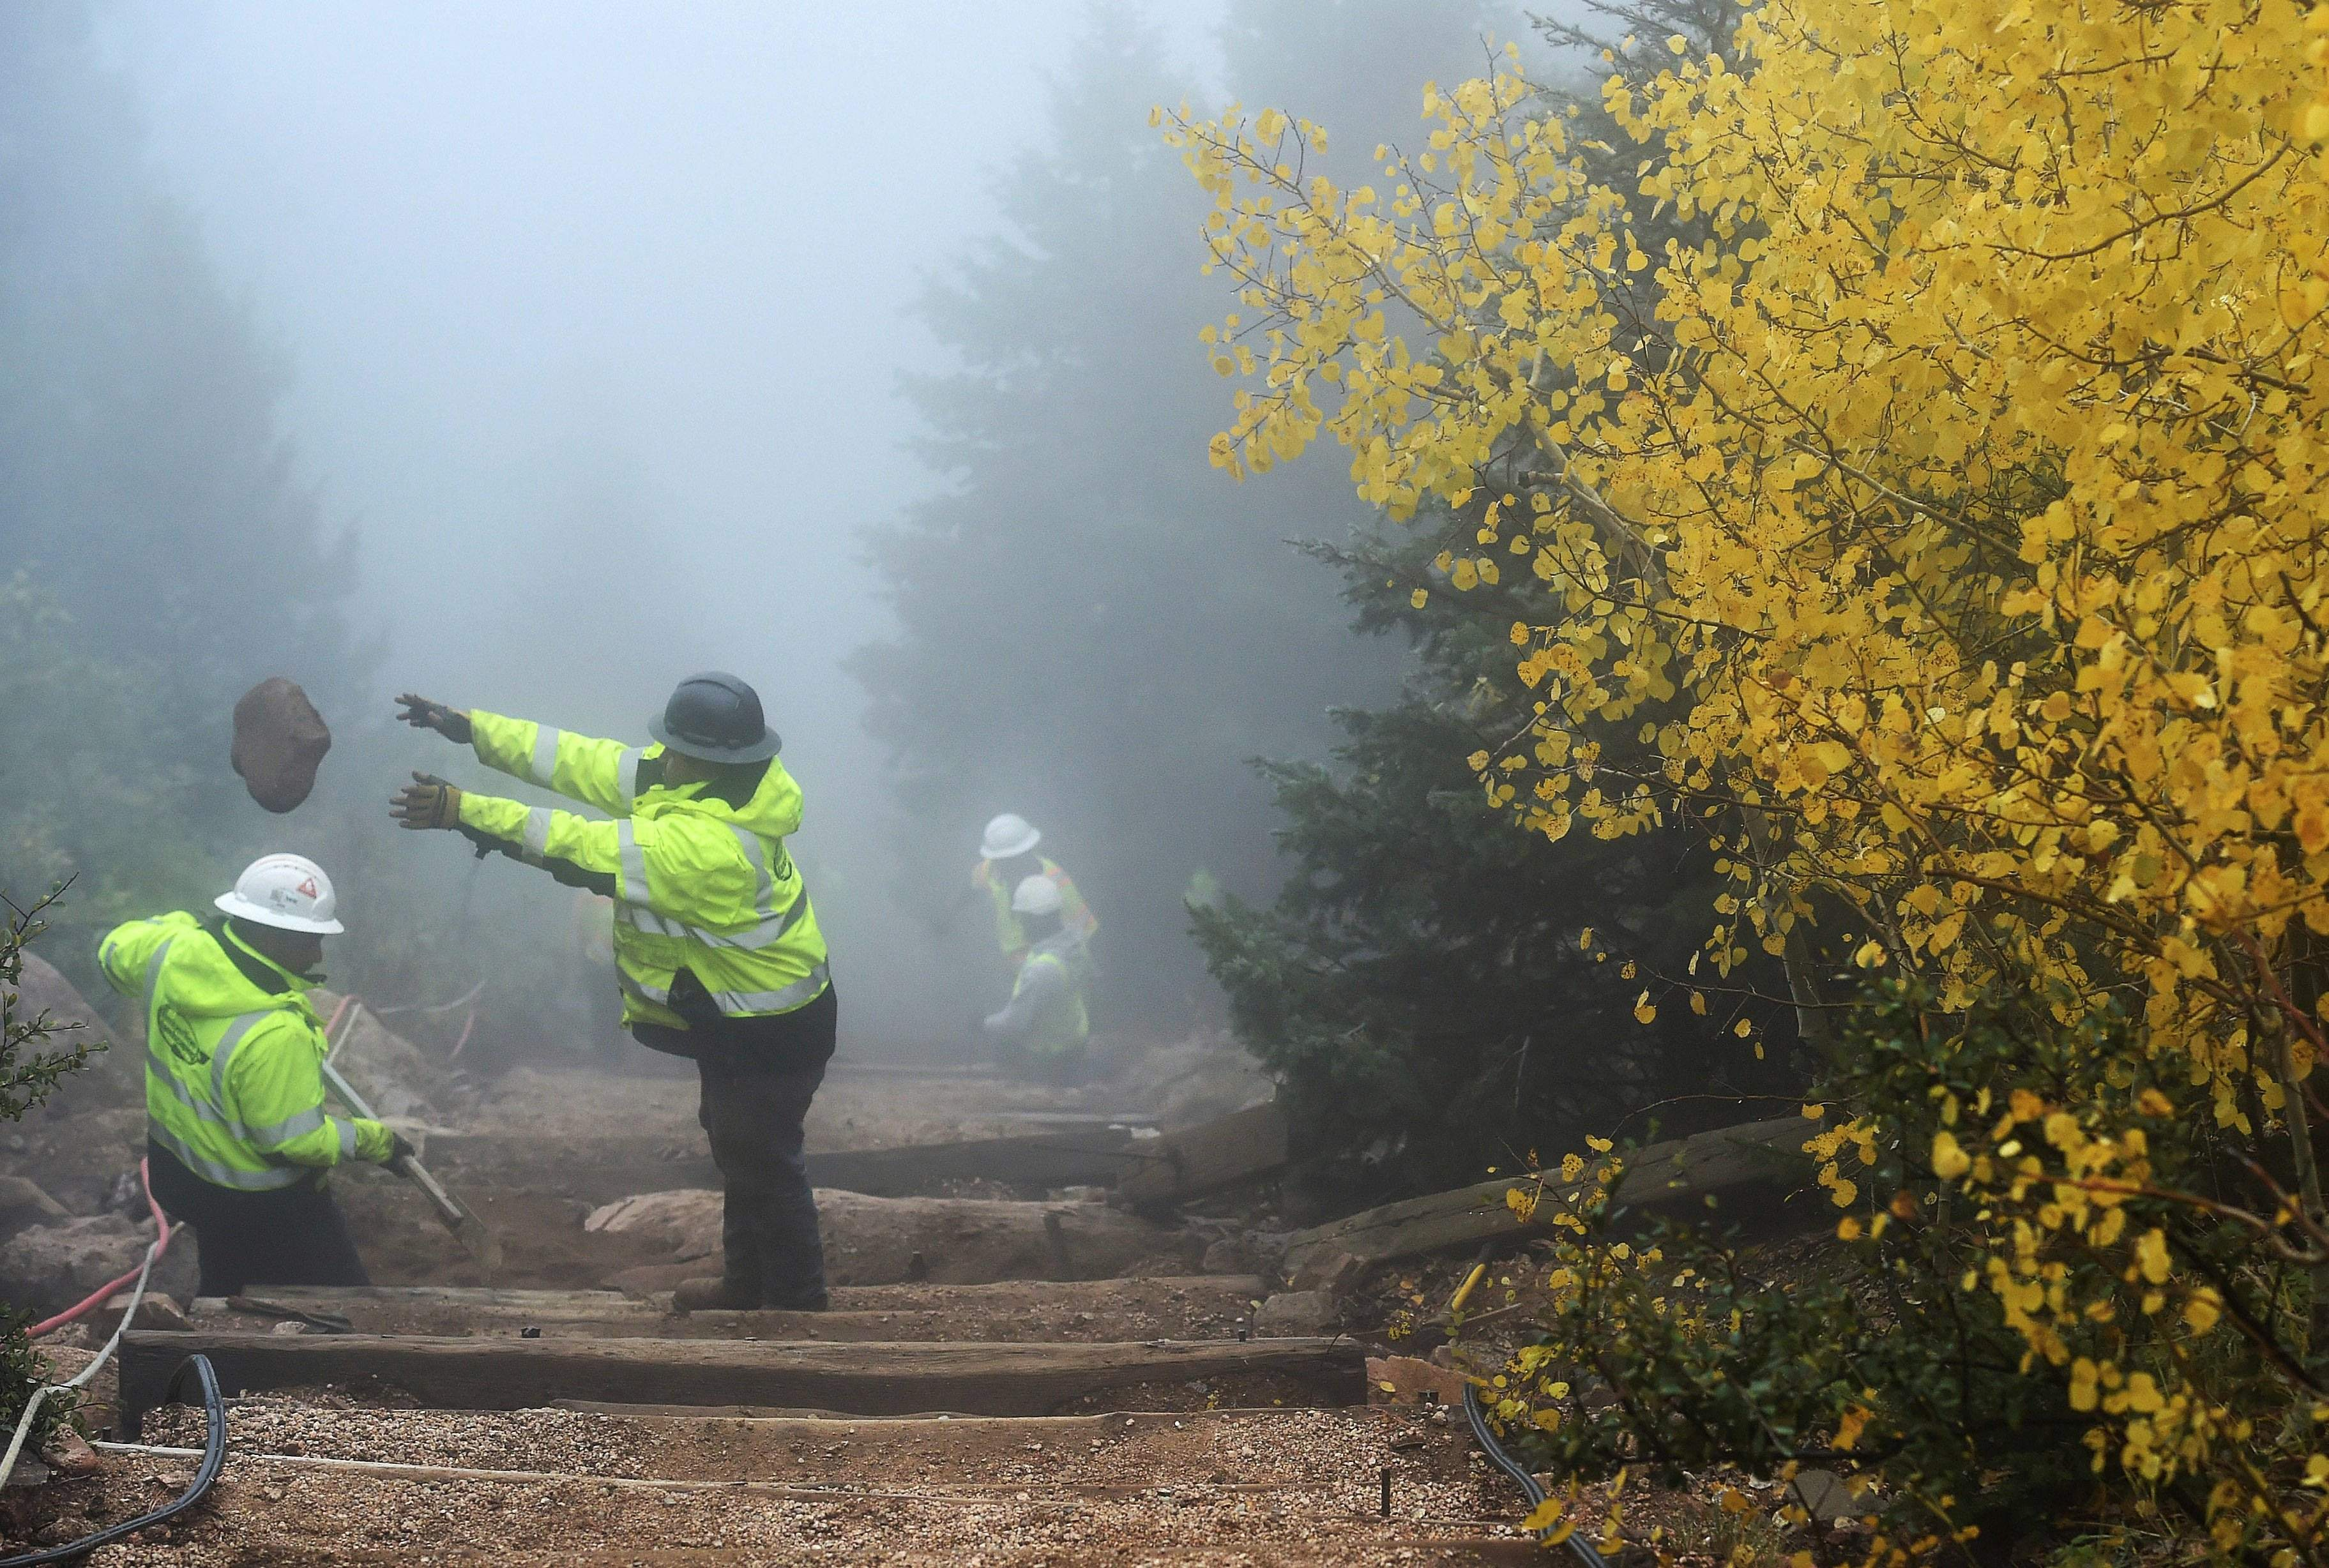 Durango Colorado Brutal conditions challenge workers on Manitou Incline News 60x60 image